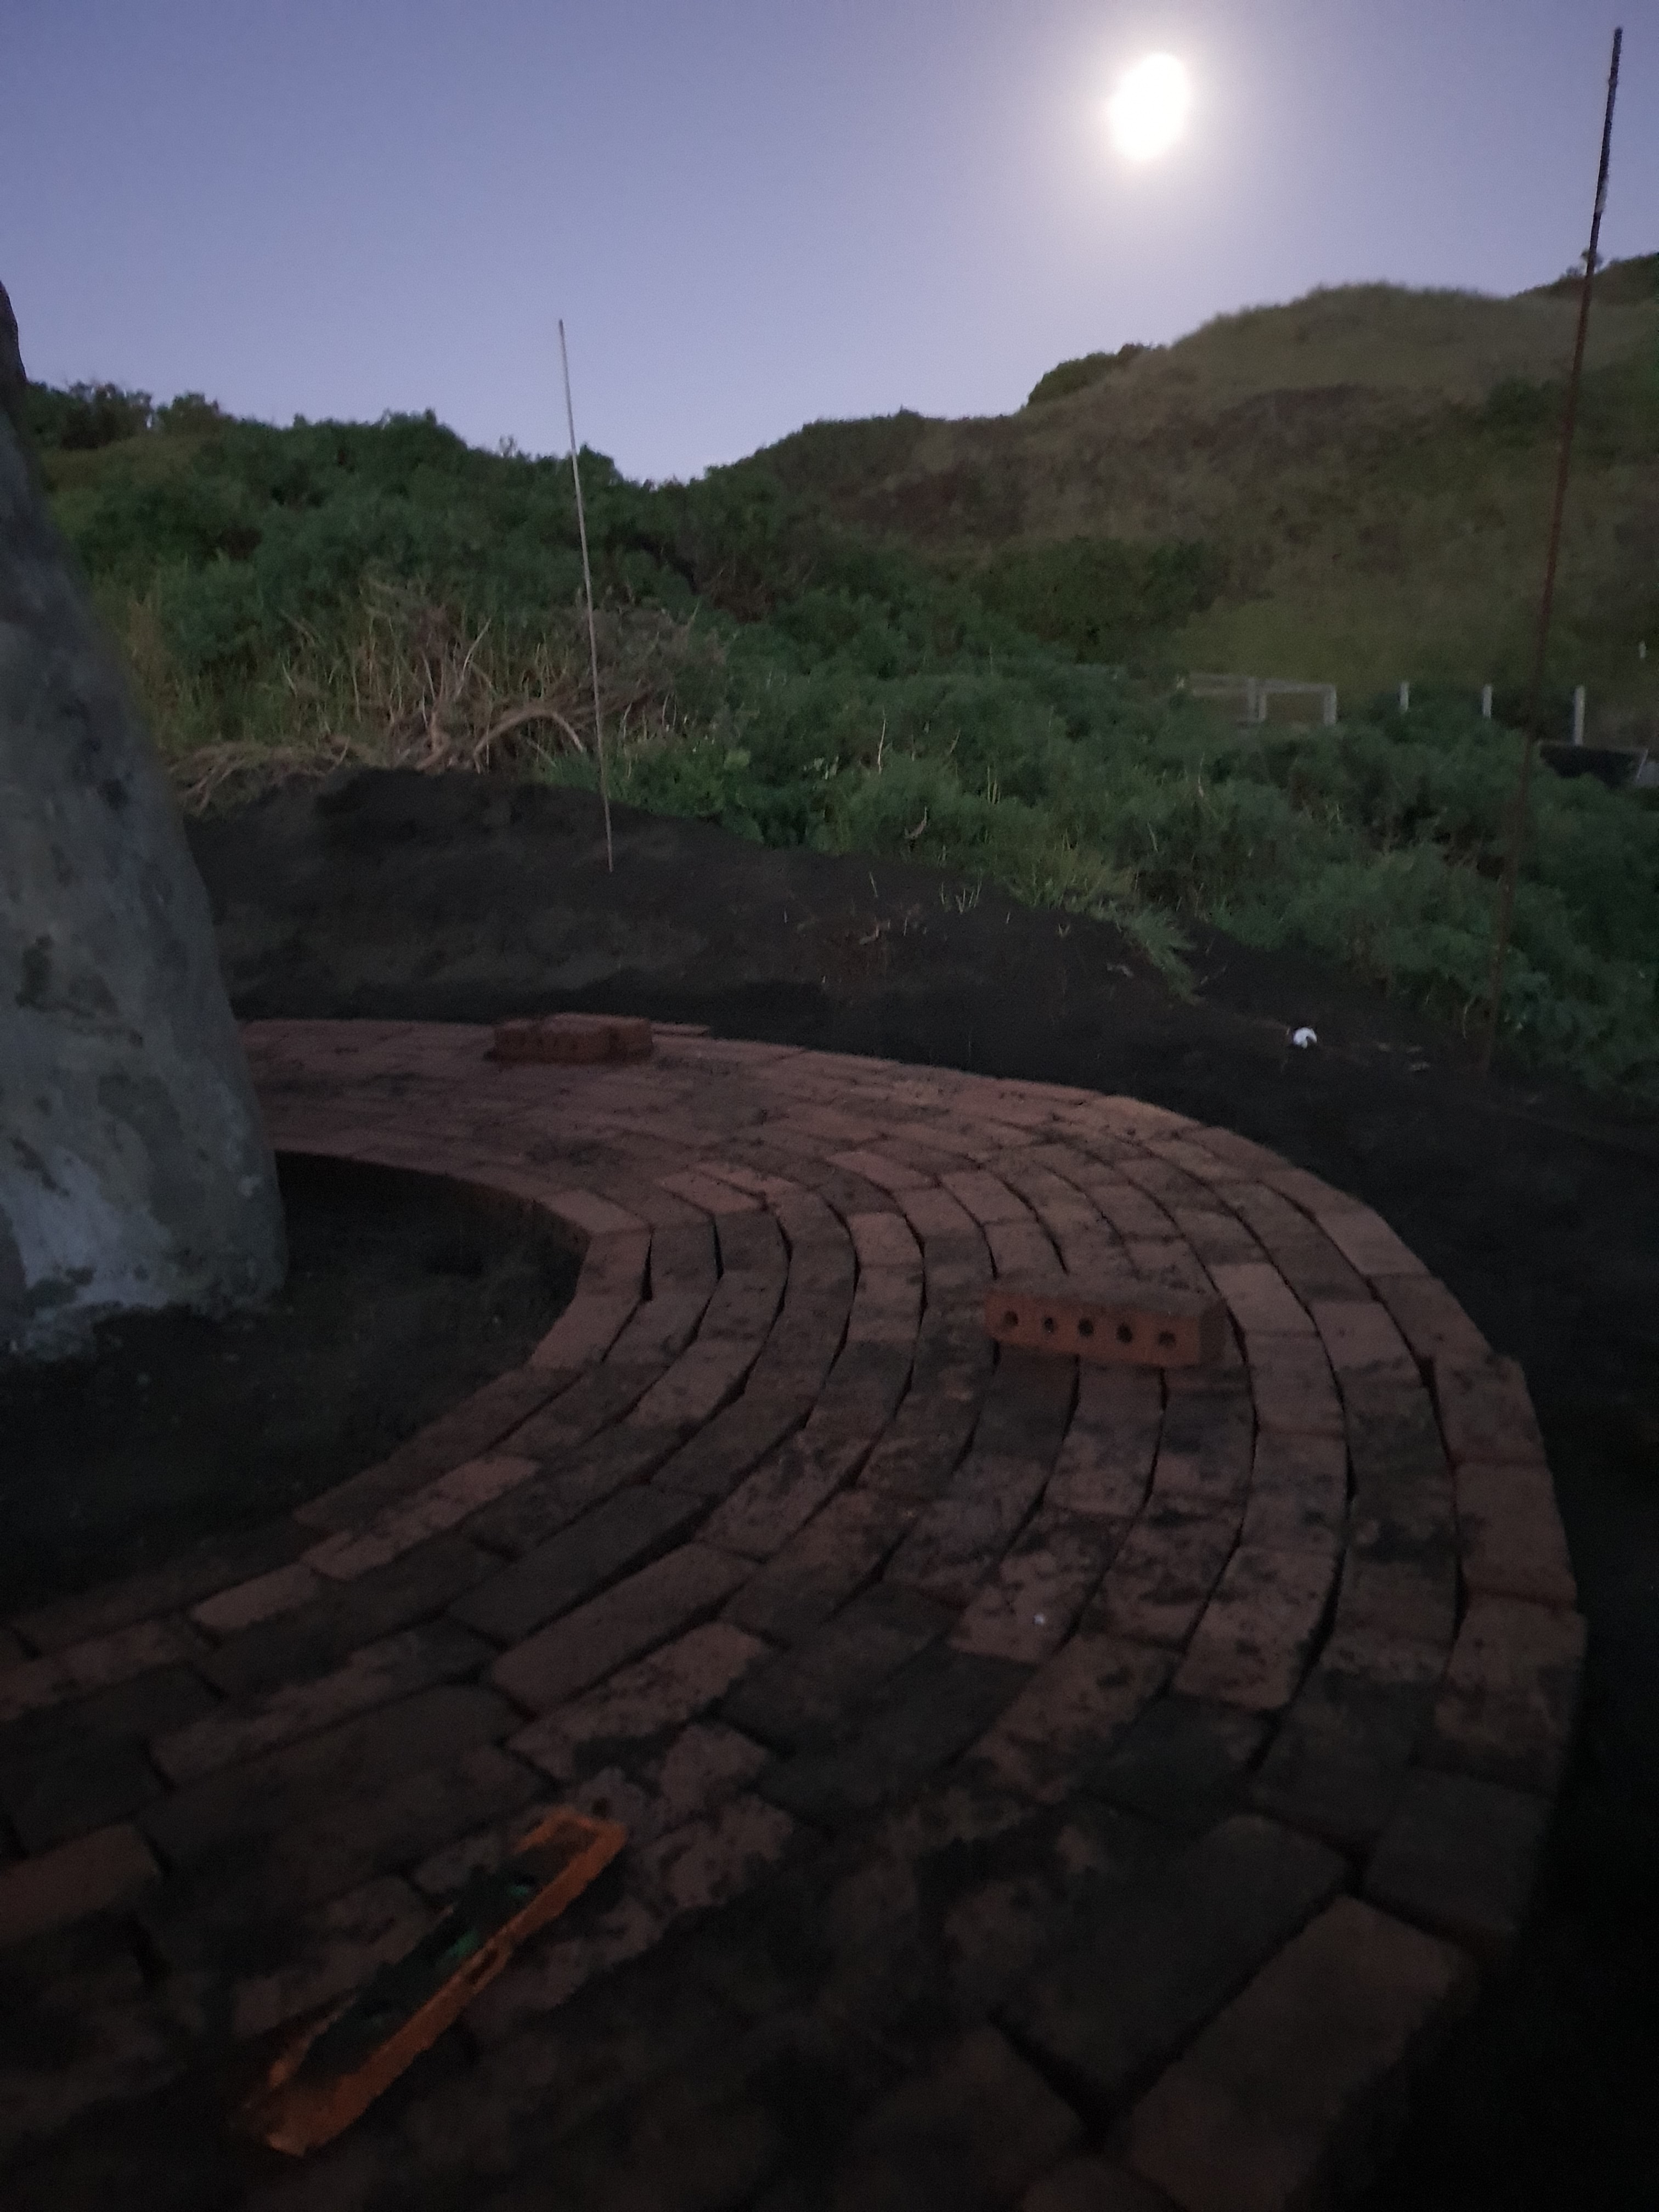 Paving in the moonlight